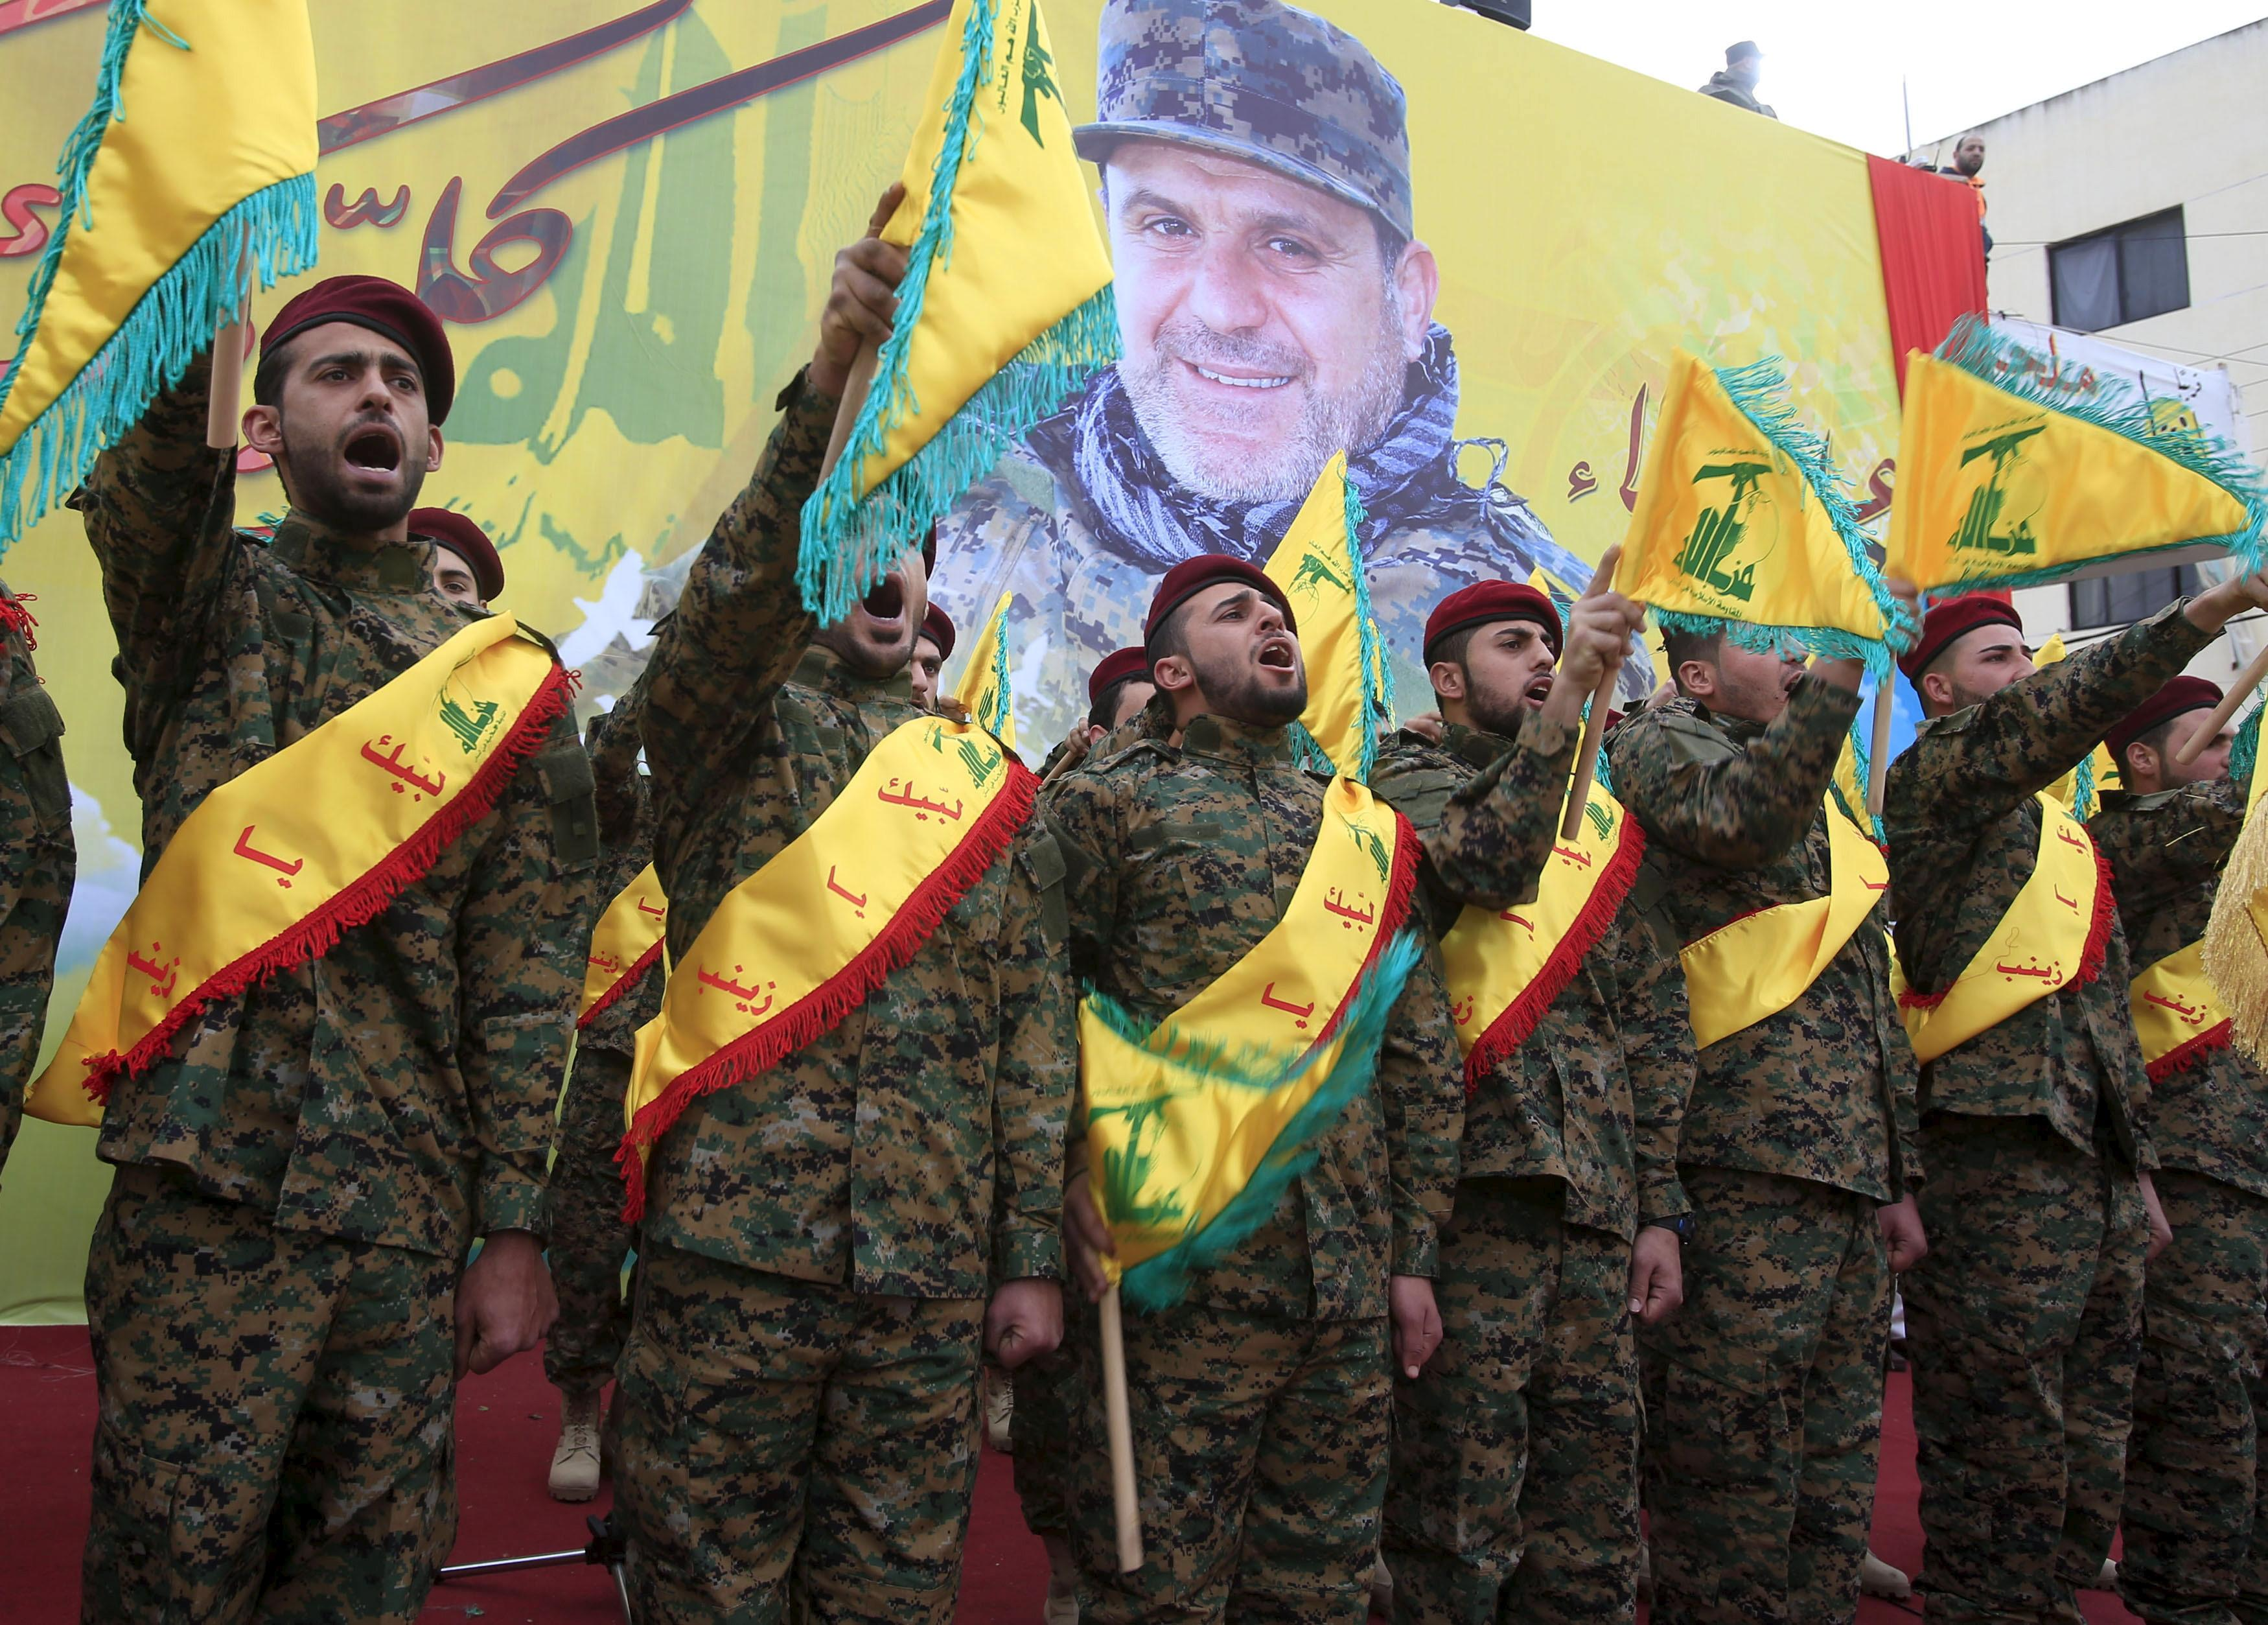 Hezbollah members chant during a funeral in Lebanon.